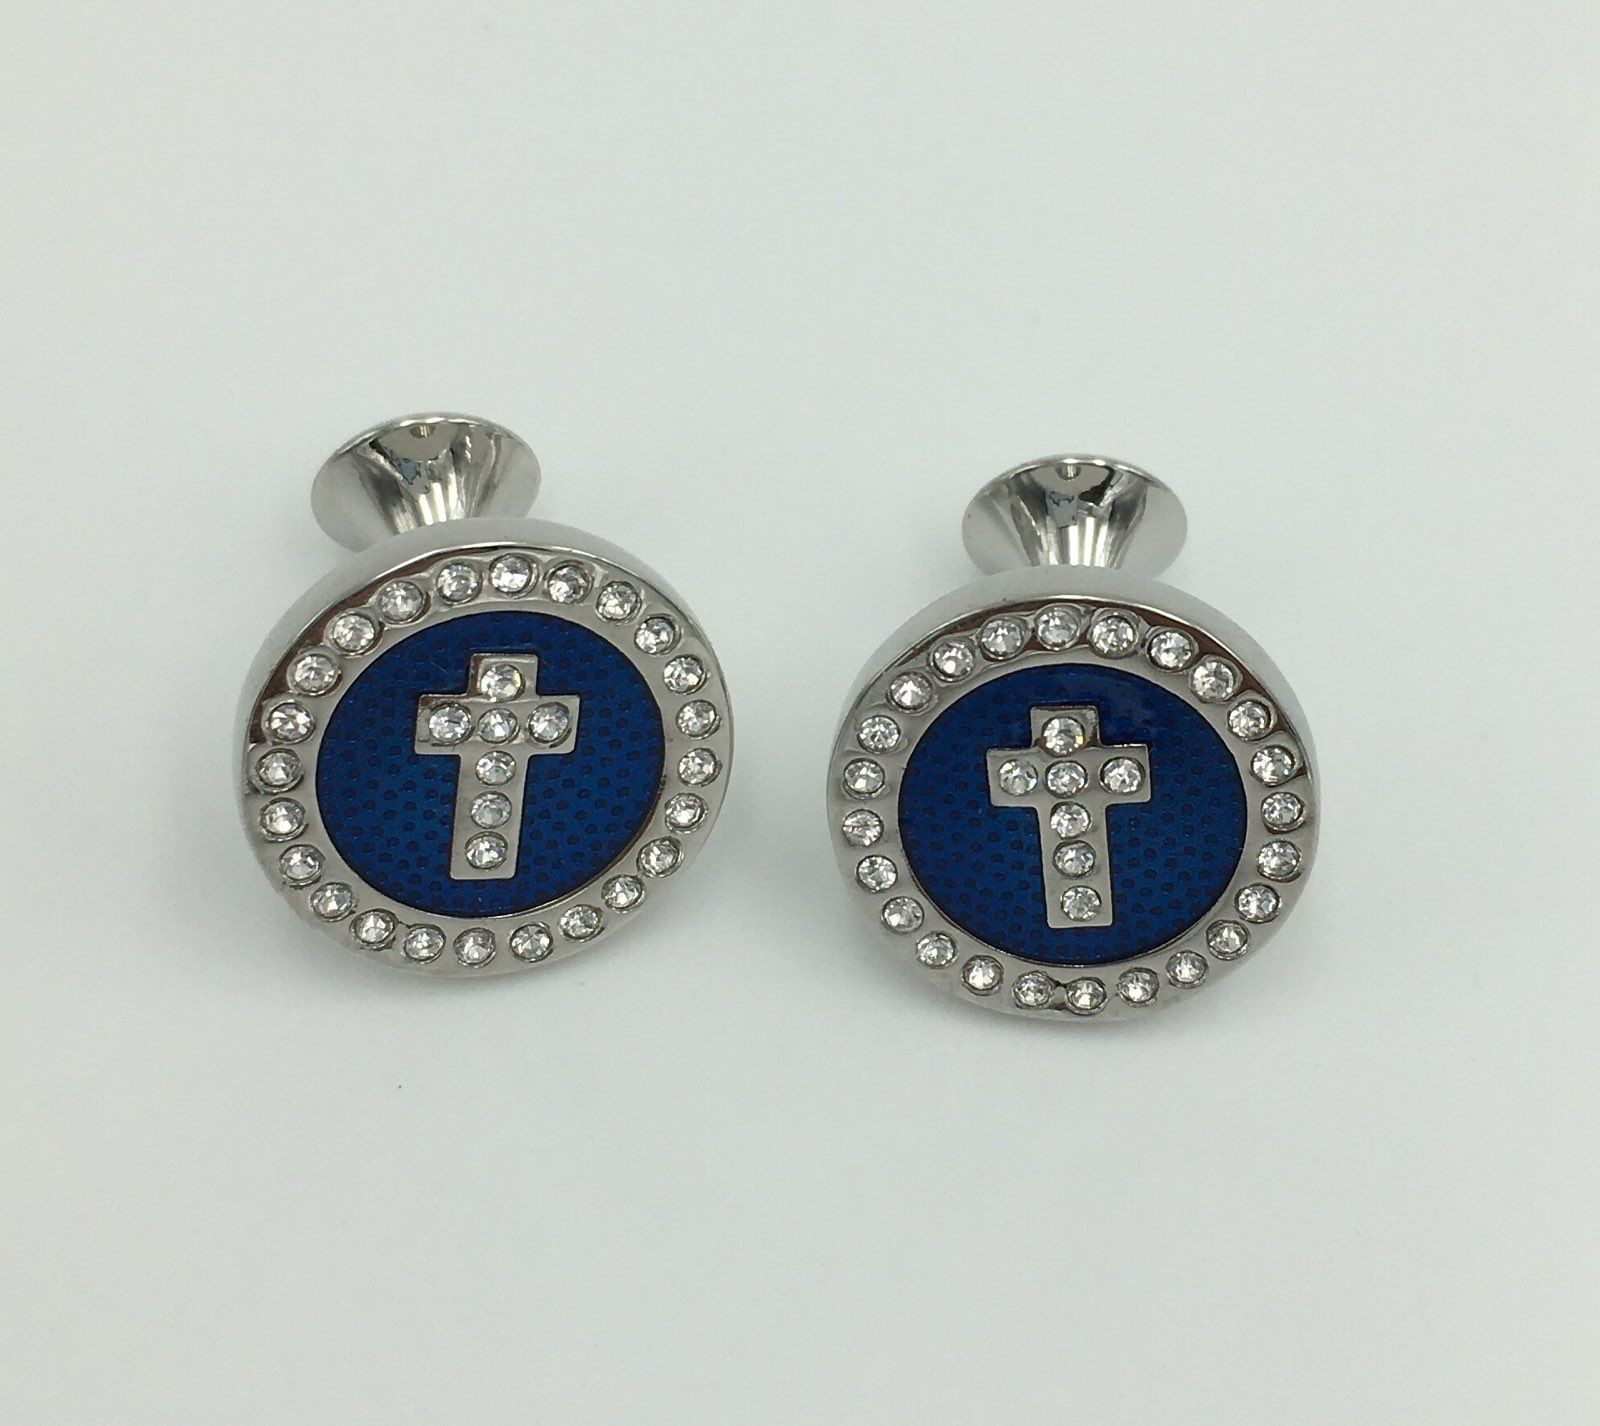 2 Pc. Noble Circle Cross Diamond Stone Cufflinks - Cobalt Blue